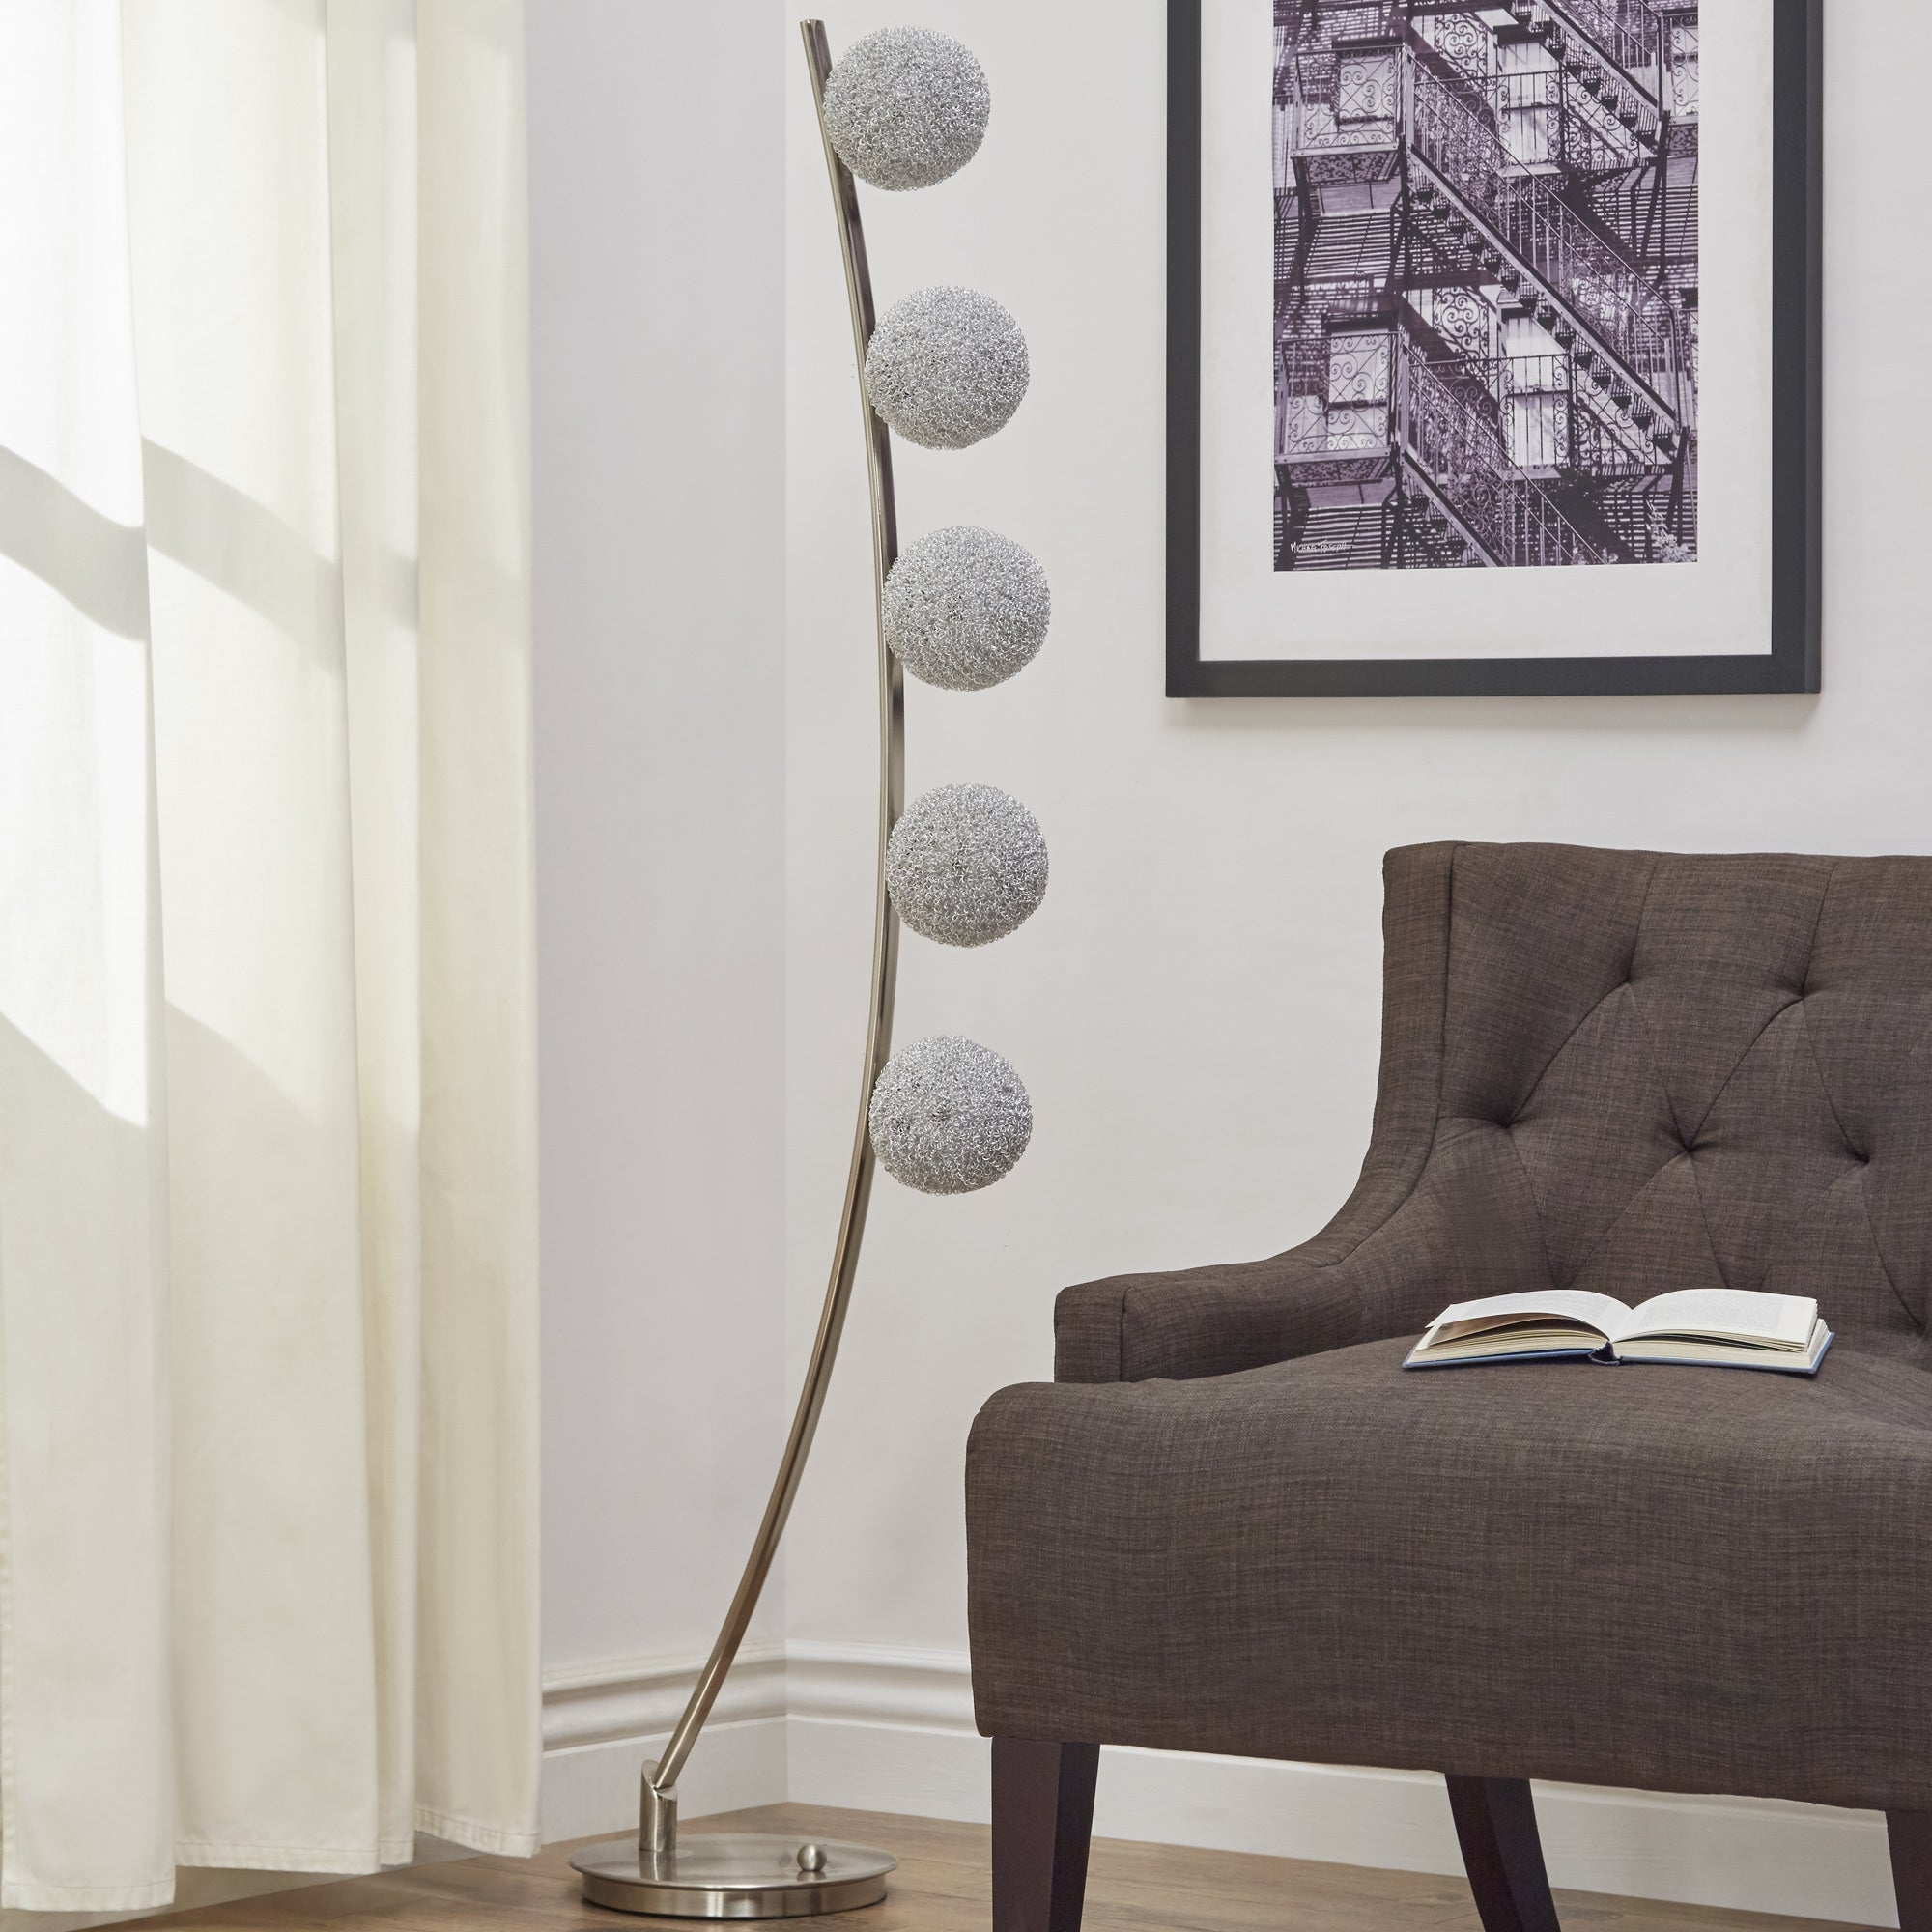 Triella Nickel Finish Floor Lamp by iNSPIRE Q Bold - Free Shipping Today -  Overstock.com - 22835677